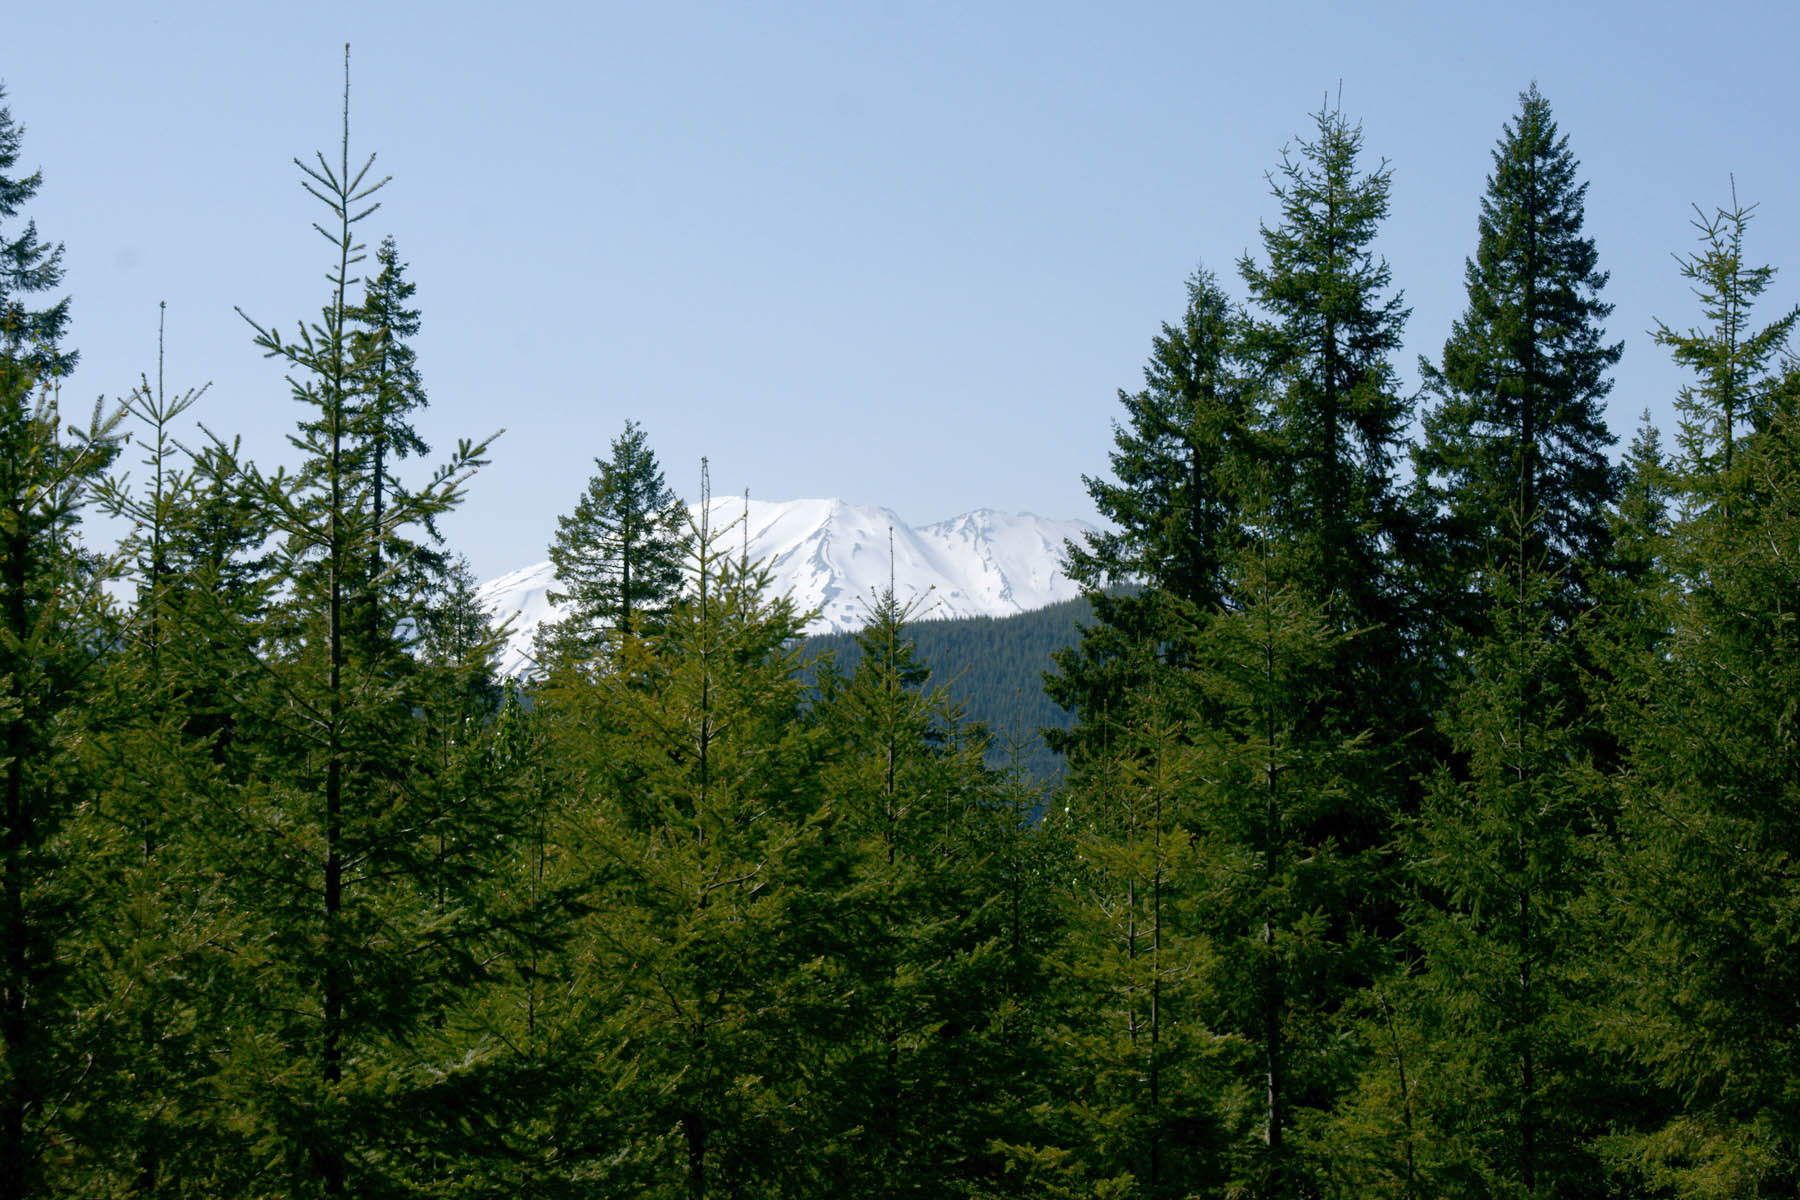 The temperate forest is very variable, in some places the deciduous trees predominate while in others the conifers are more common. Celebrating Forests Today And Every Day Arbor Day Blog